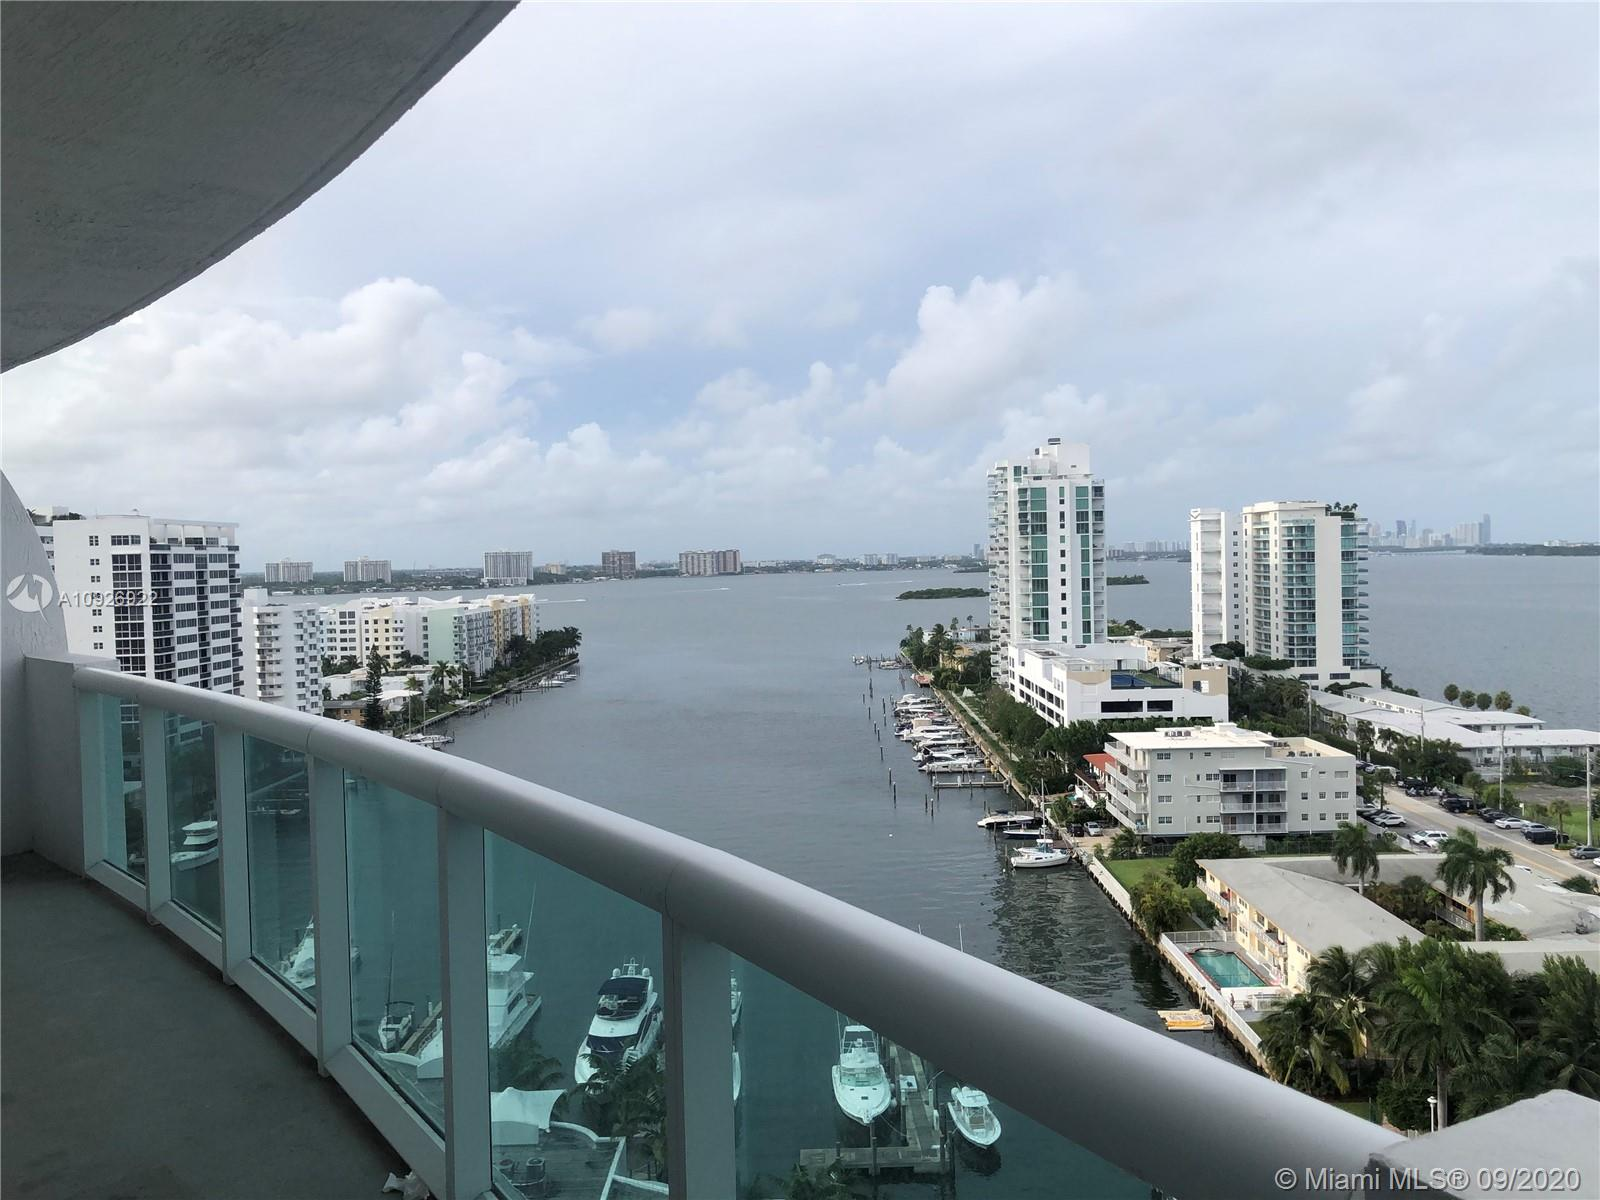 Amazing views. 2-bedroom/2-bath + DEN. Five star lifestyle. European kitchen, SS appliances and granite countertops. Master bath with jacuzzi and dual sinks, large balcony, new flooring, 2 pools,  Marina, Clubhouse, Bar BQ area, Great gym w/ sauna  7 minutes to the beach and 15 to Brickell and Downtown Miami. 24 hours security. Association includes cable and internet. Ready to move in